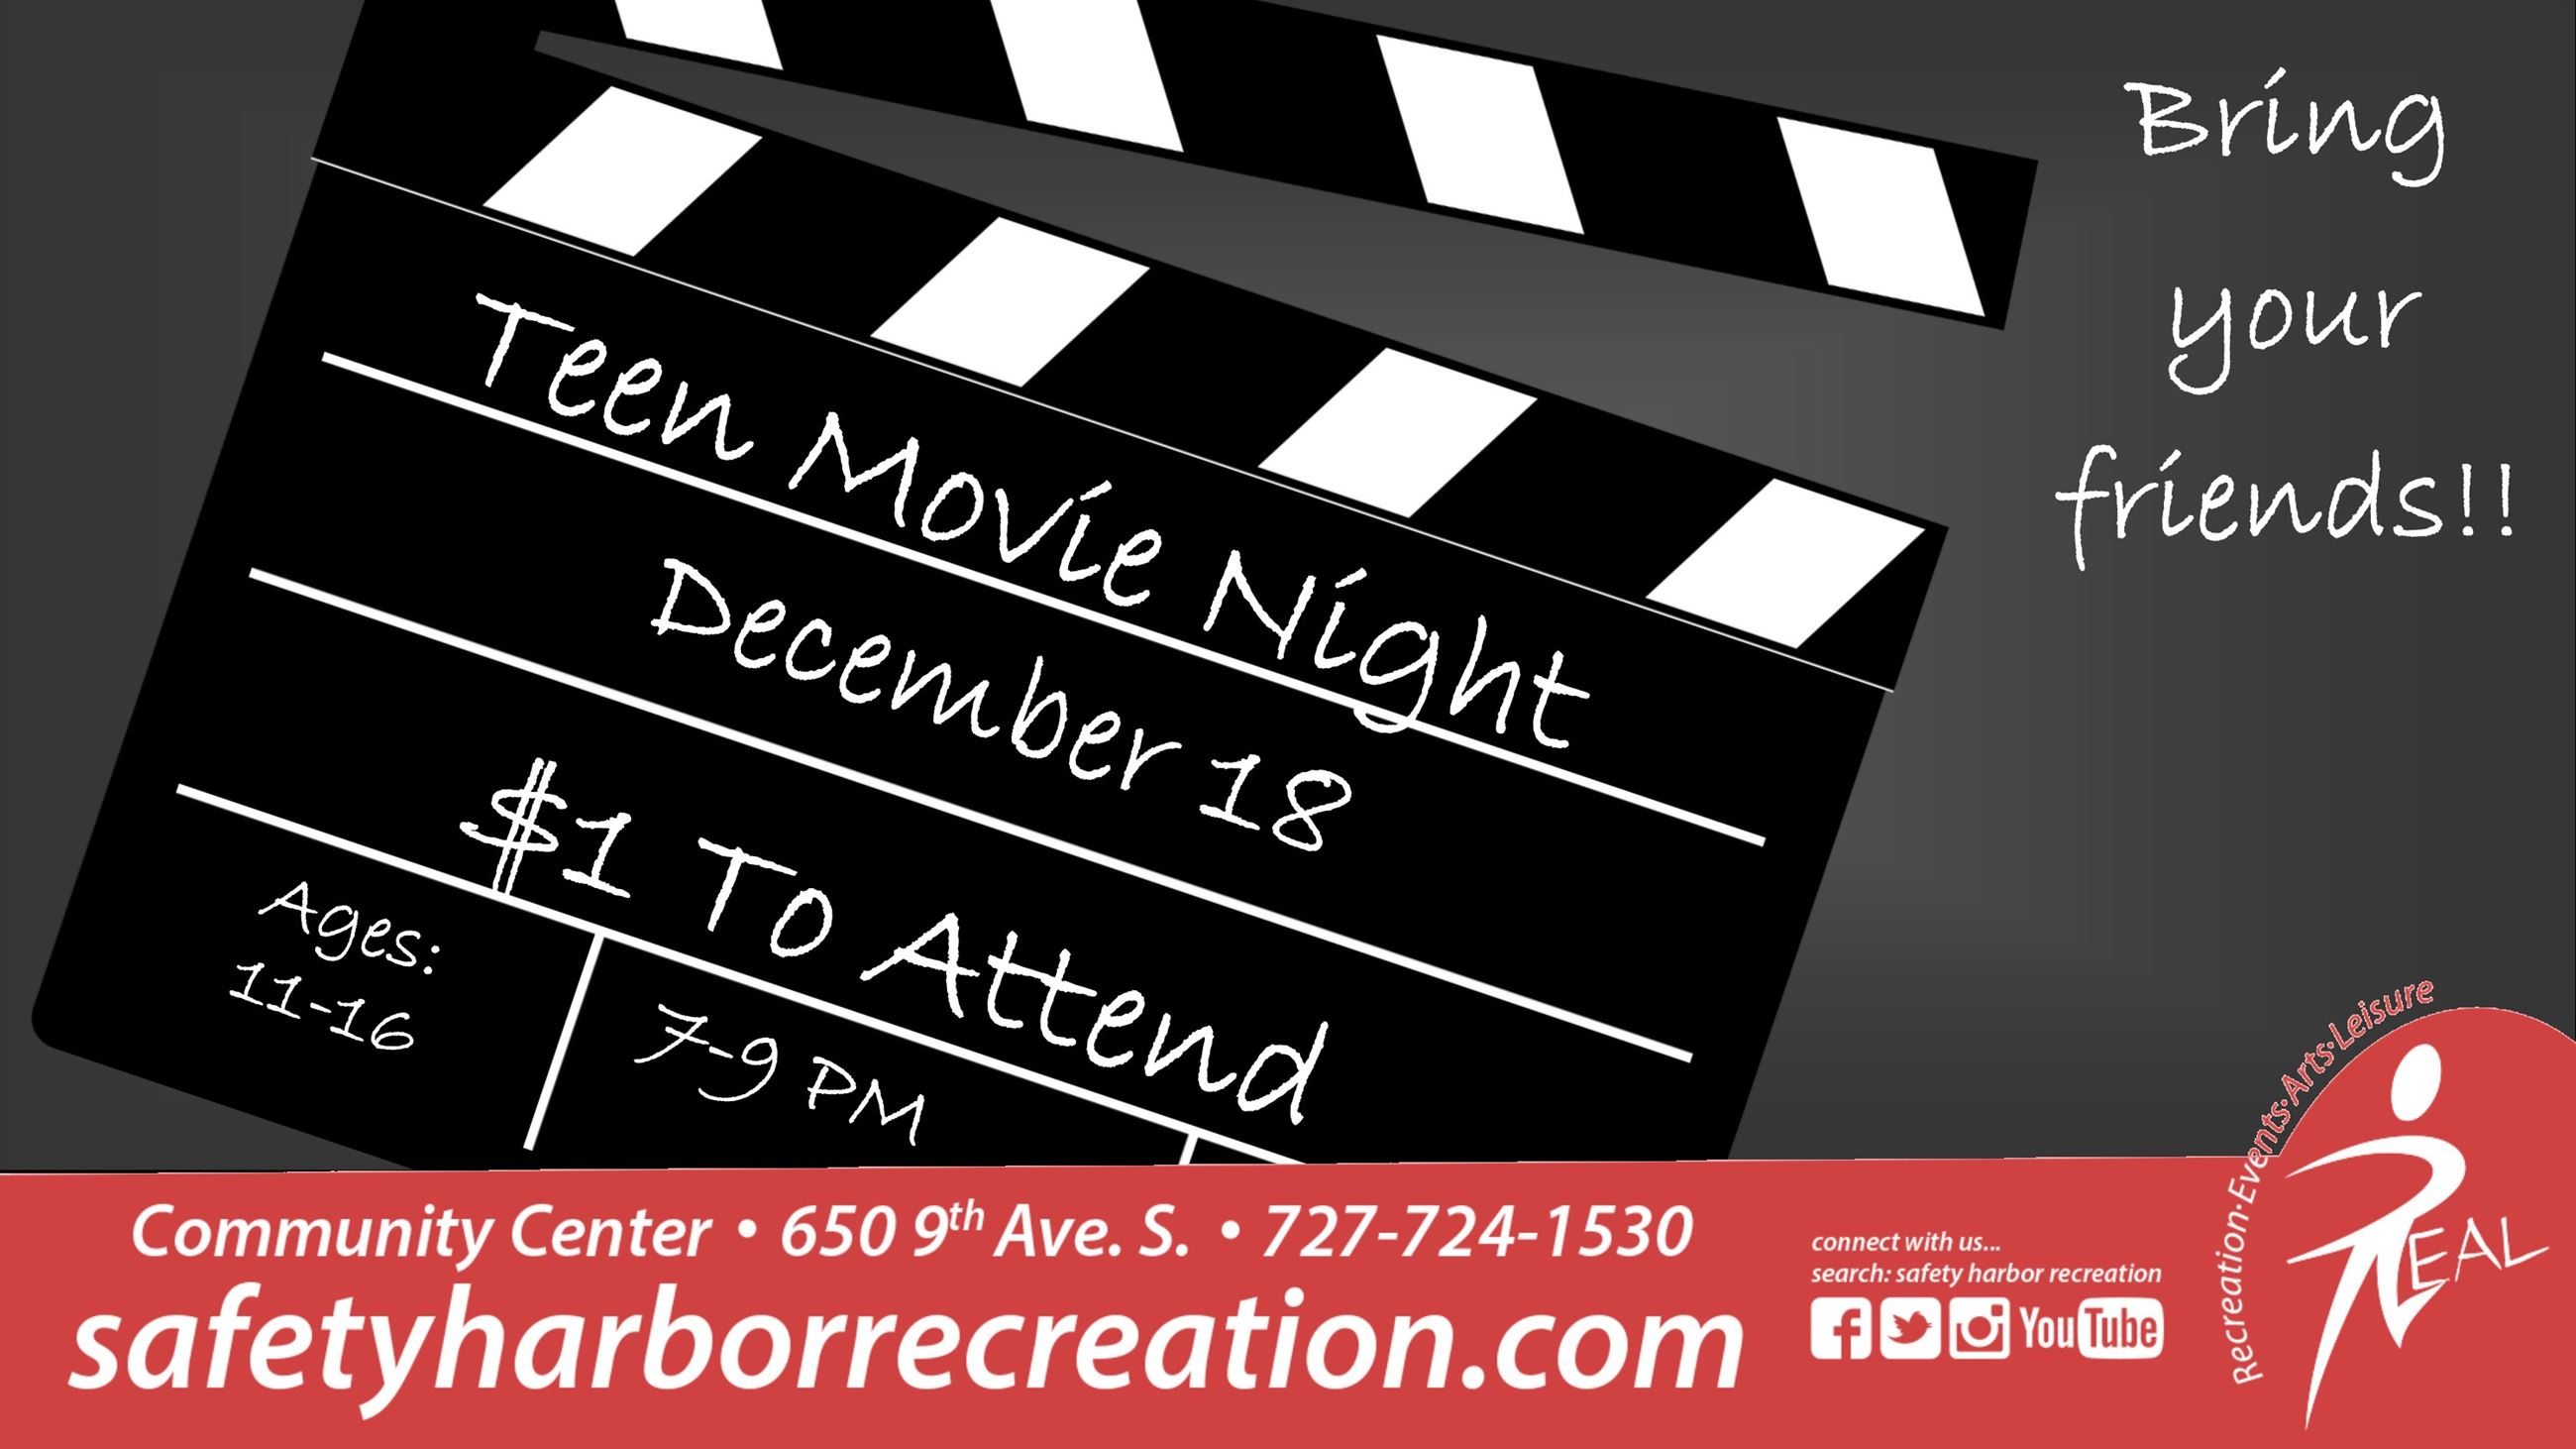 Teen Movie Night, Dec. 18, $1 to attend, Ages 11-16, 7-9pm, Community Center, Bring your friends!